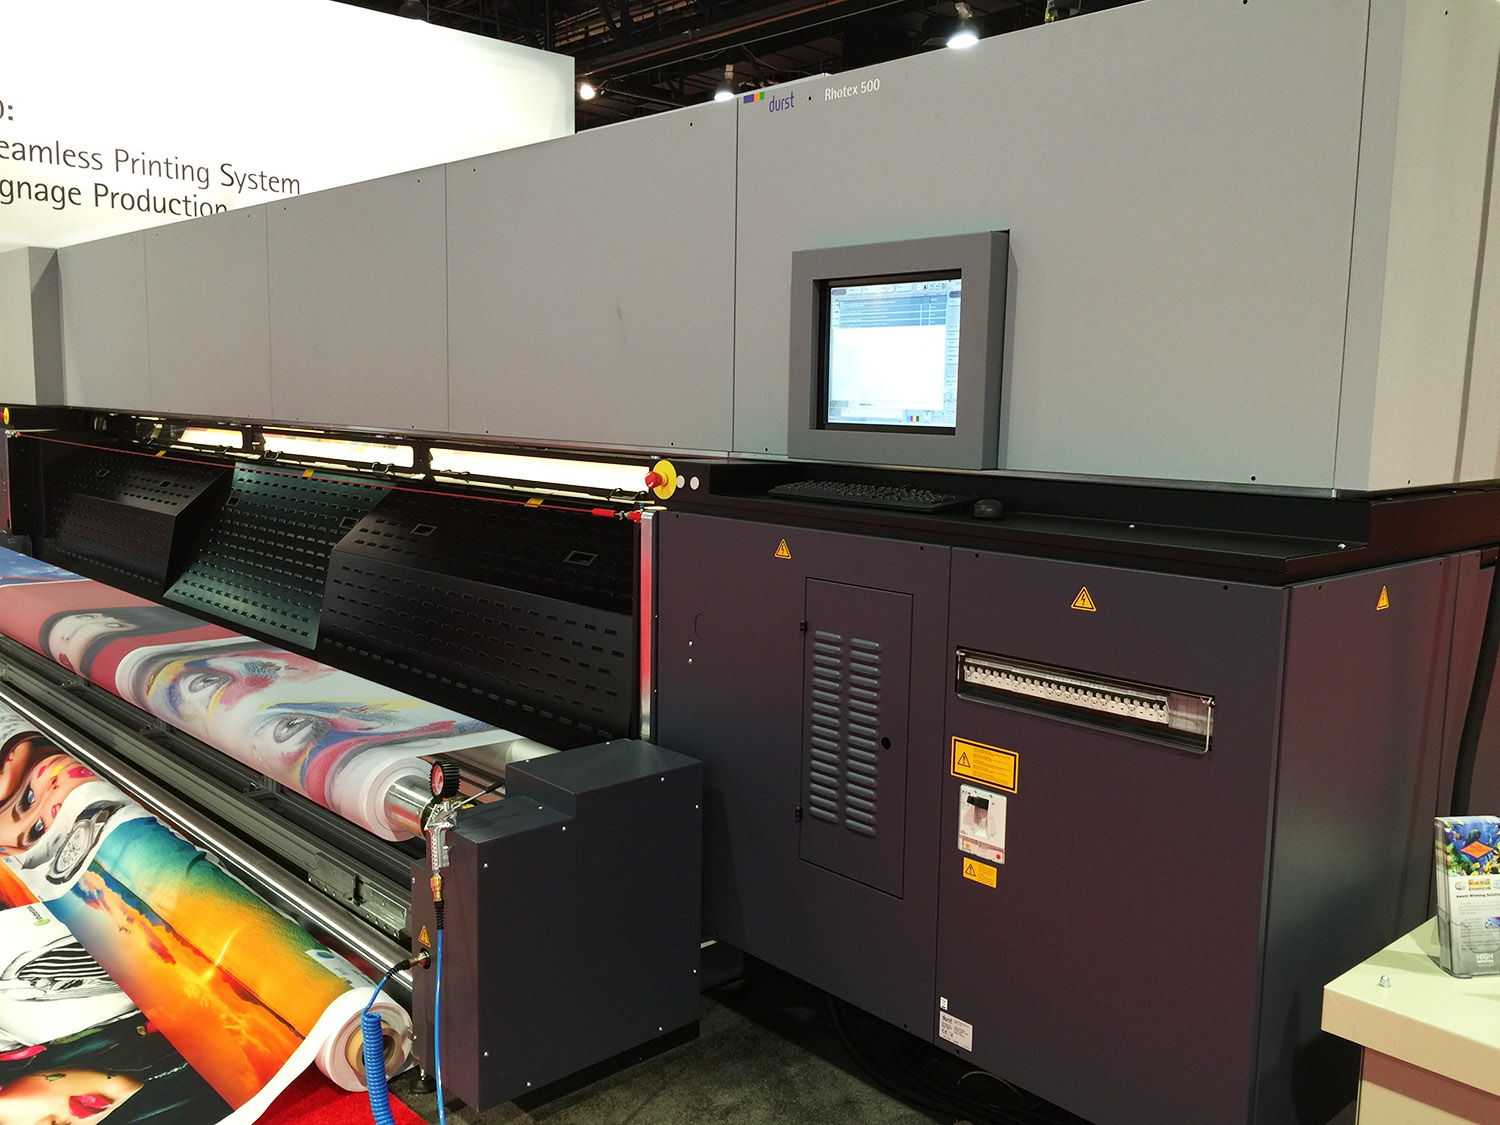 durst rhotex 500 dye sub printer